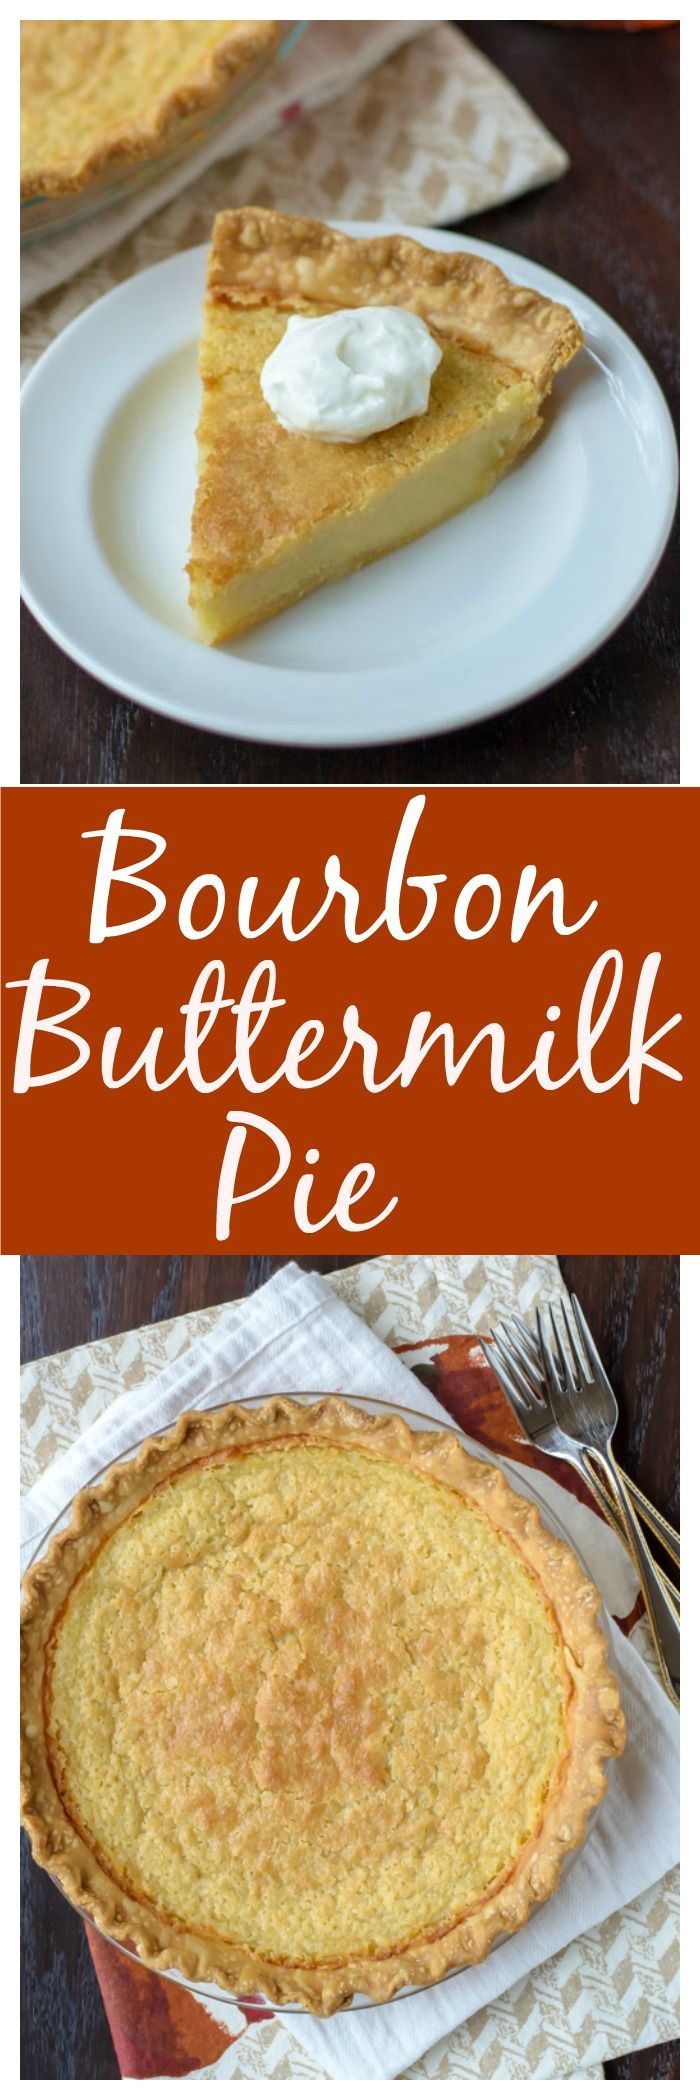 Bourbon Buttermilk Pie. An easy, one-bowl pie recipe that's absolutely delicious! You'll love this sweet take on a Southern classic.